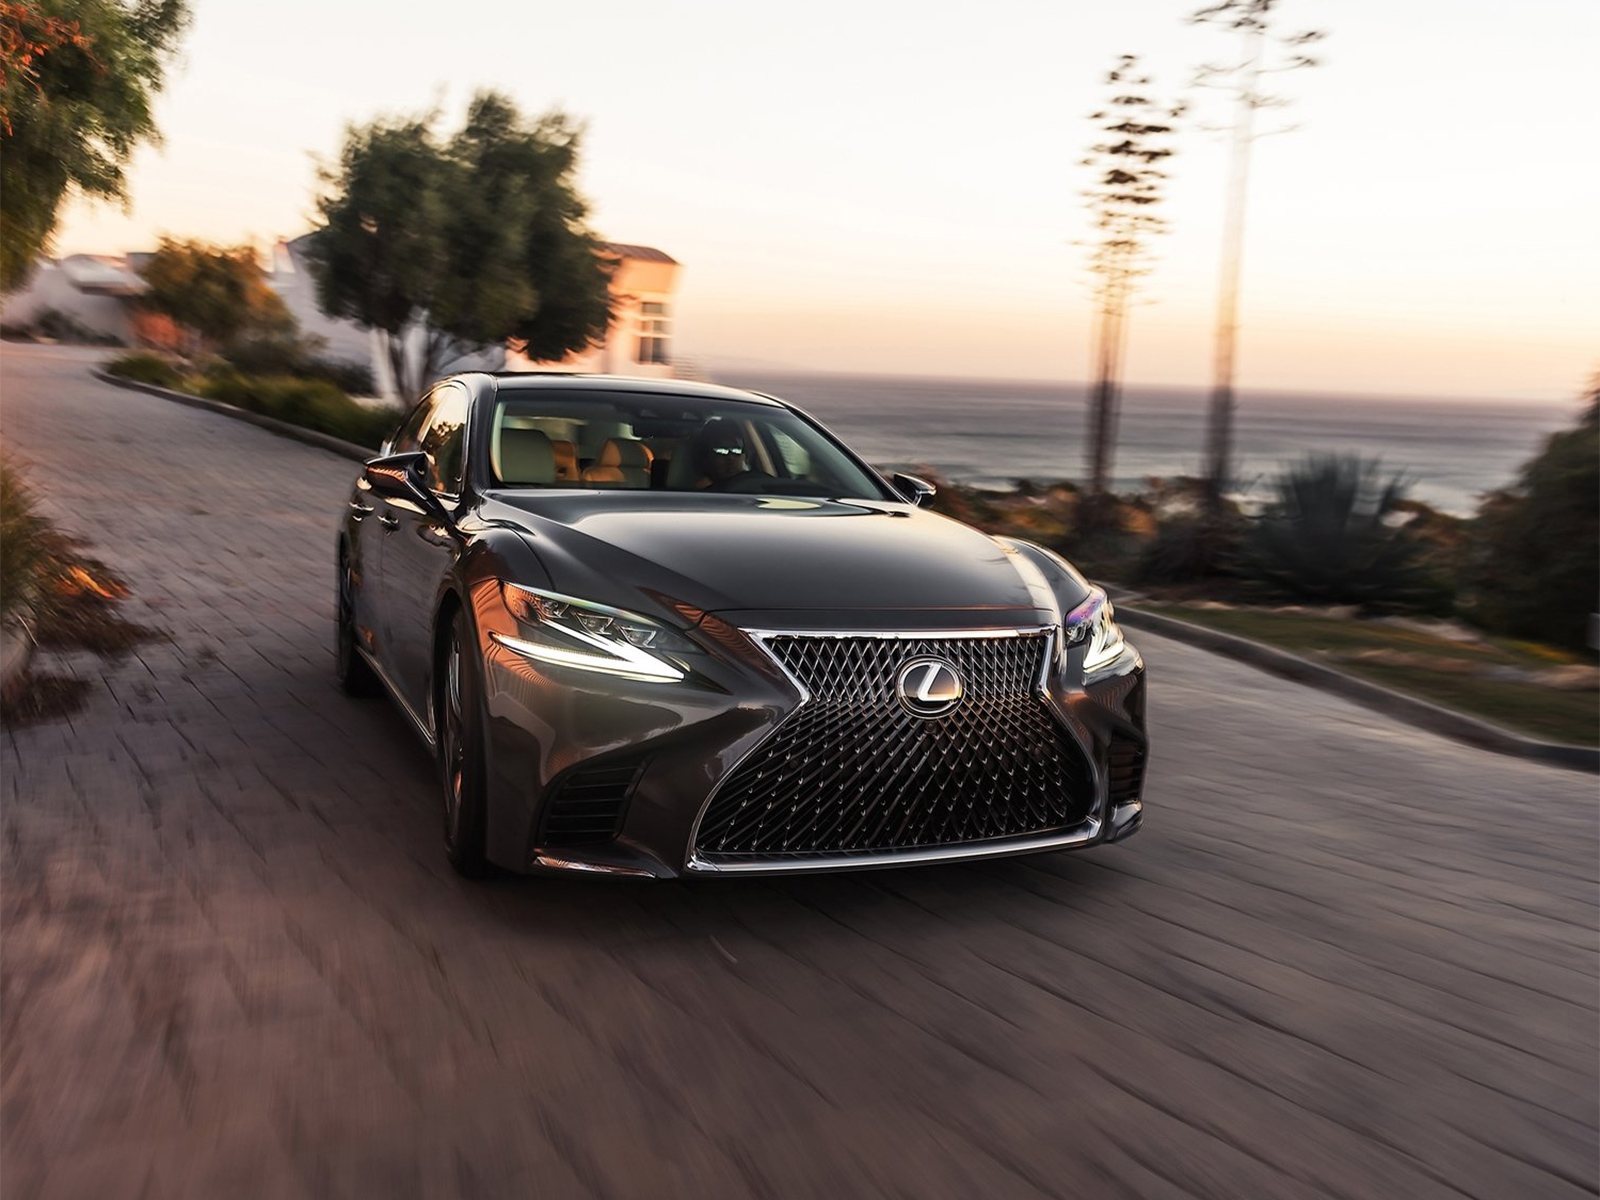 Lexus ct review 2018 autocar oukasfo tagslexus ct review 2018 autocarlexus wikipedialexus reviews autocarlexus rx wikipediathe discontinued lexus ct200h is actually updated for 2018lexus malvernweather Choice Image